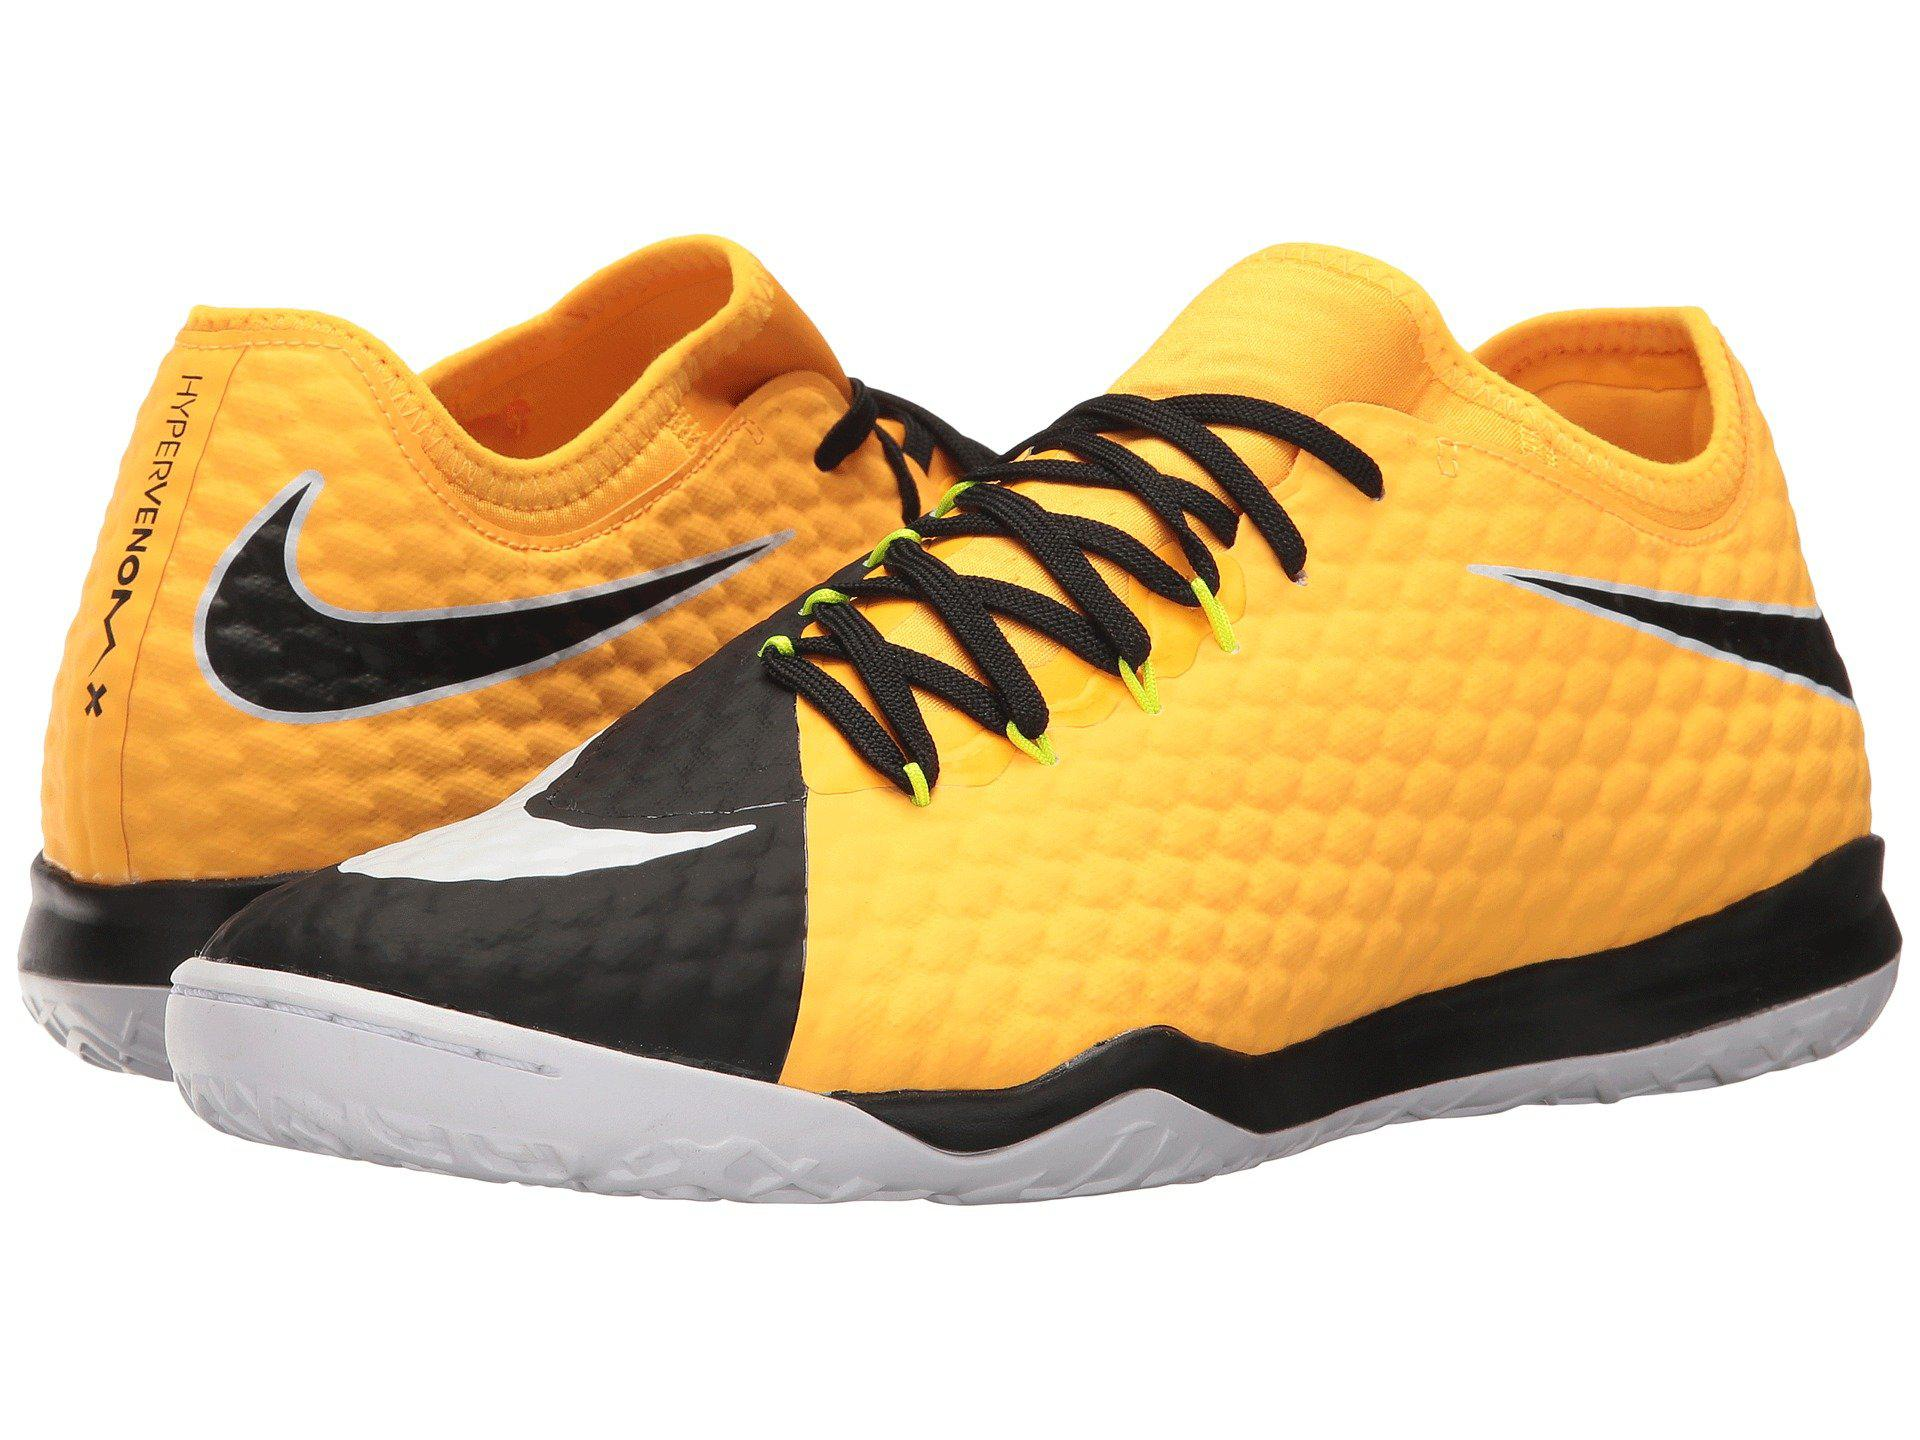 cf1a2046c7d1 Lyst - Nike Hypervenomx Finale Ii Ic for Men - Save 50%